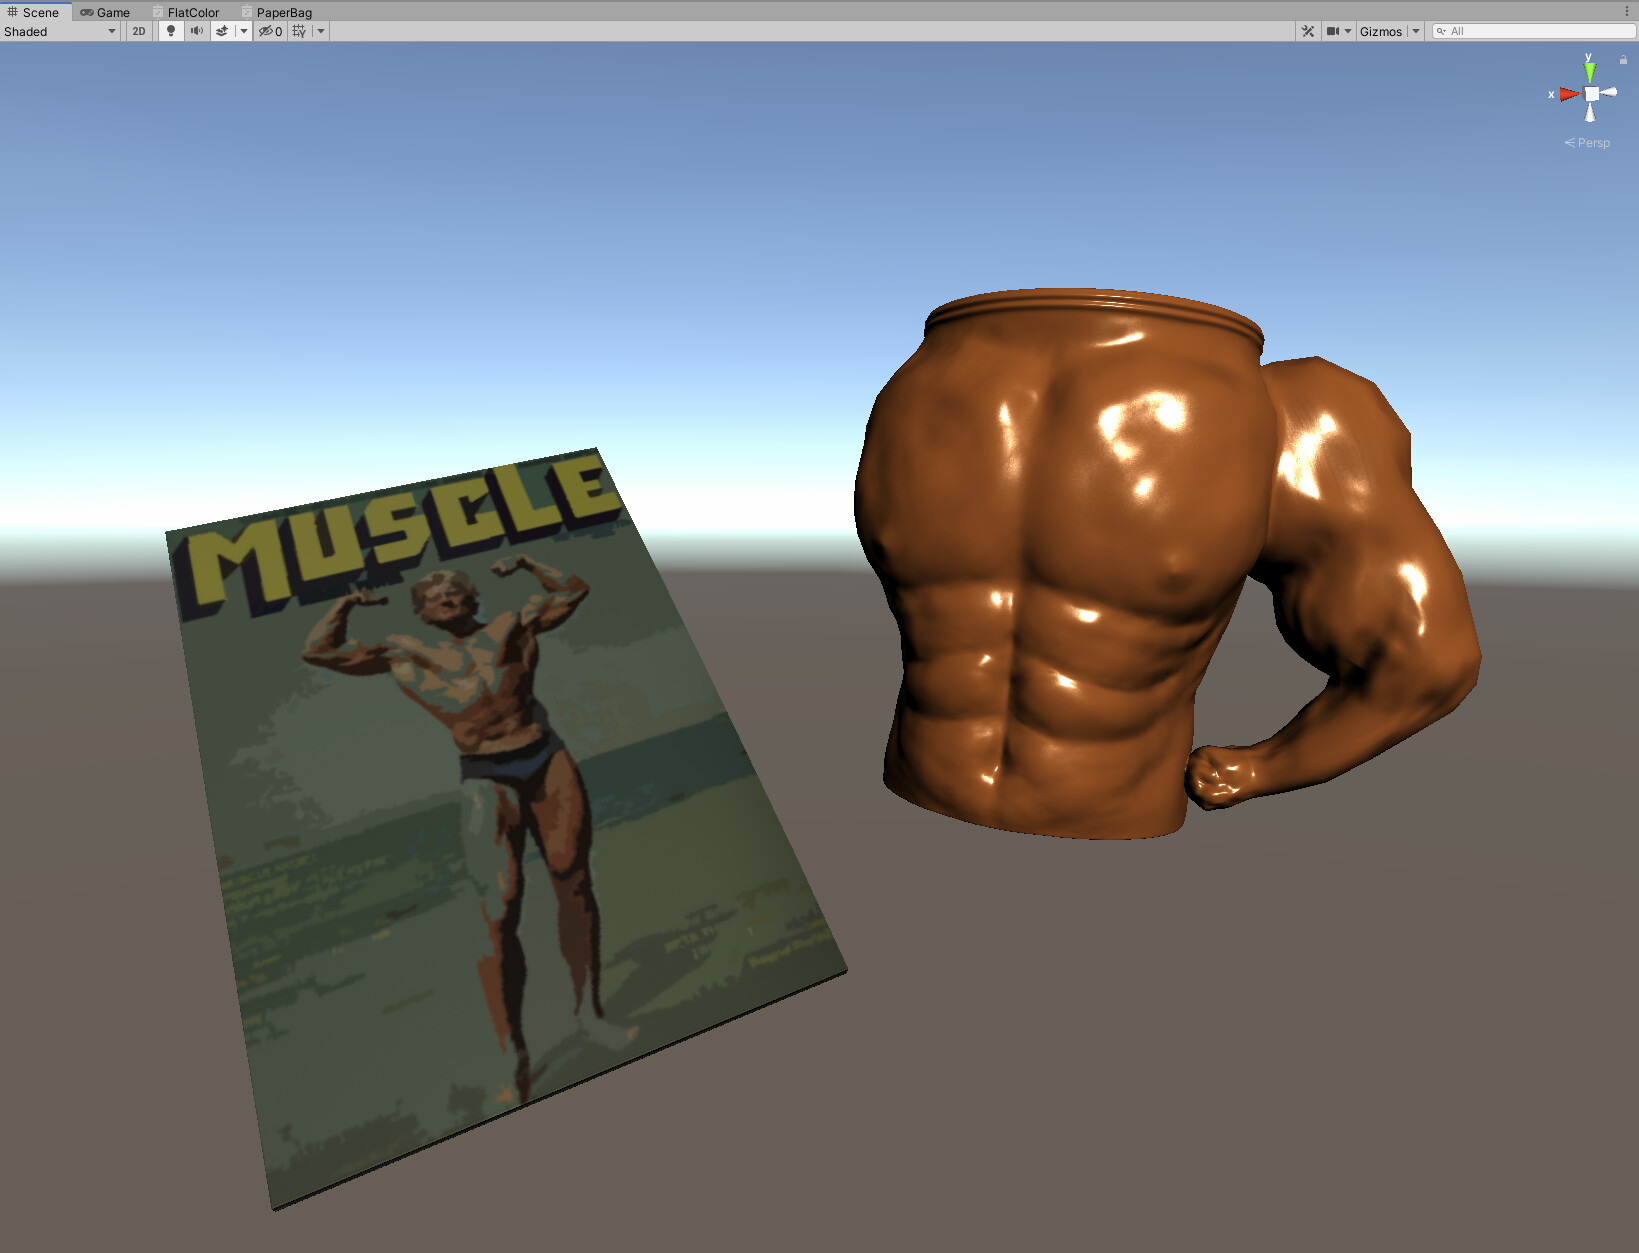 Low-poly model implemented into Unity for real-time gameplay using baked normals from Marmoset Toolbag.